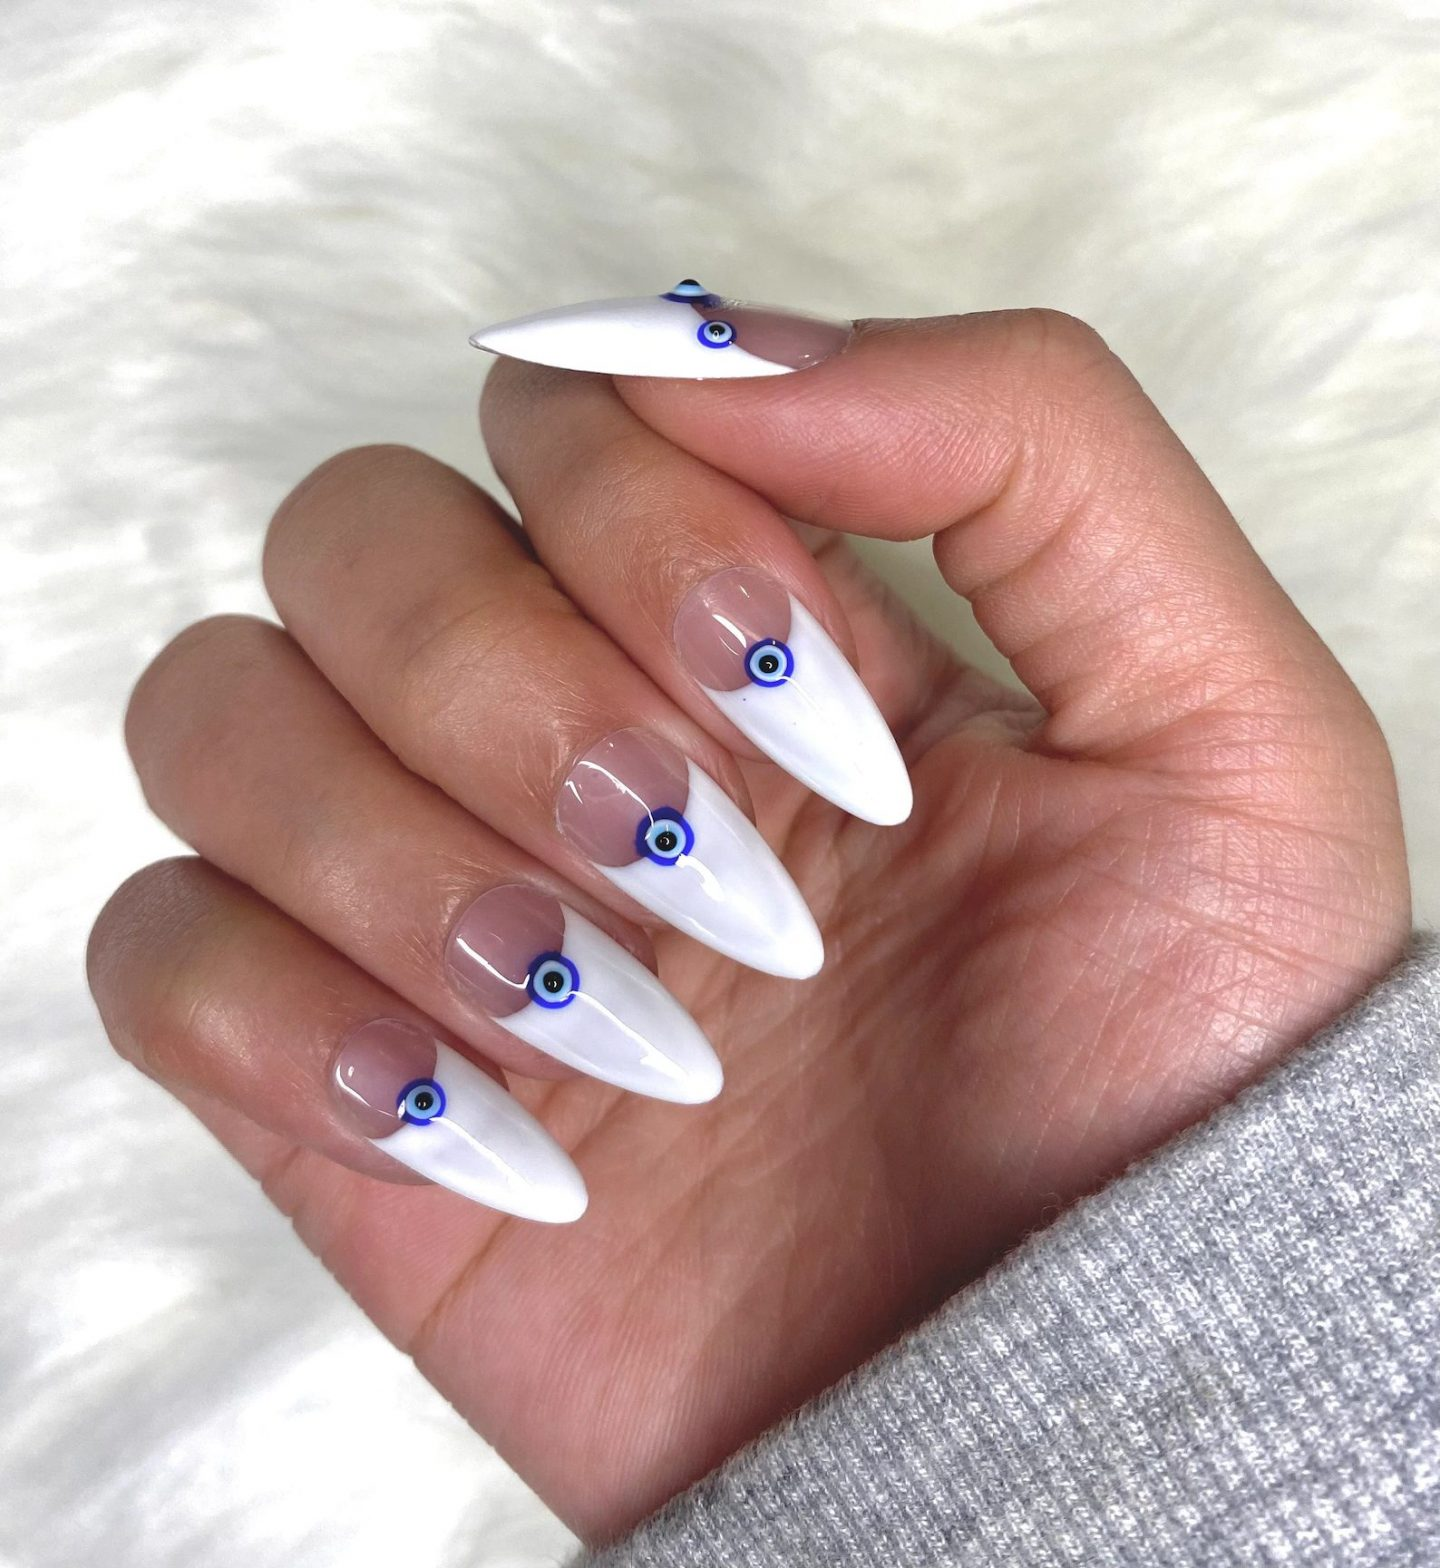 White French tip nails with evil eye in almond shape